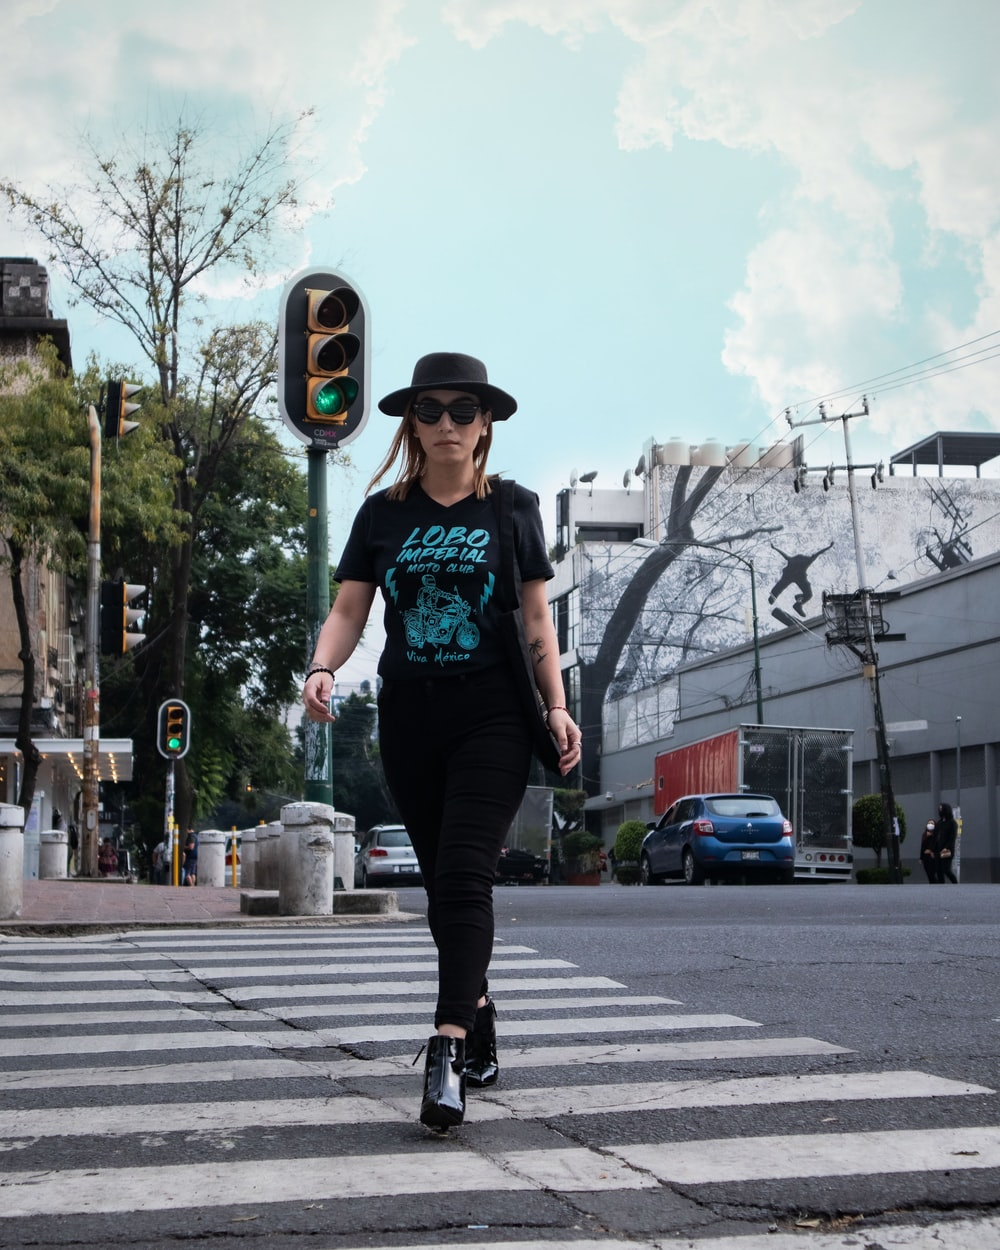 man in green t-shirt and black pants wearing black hat standing on road during daytime